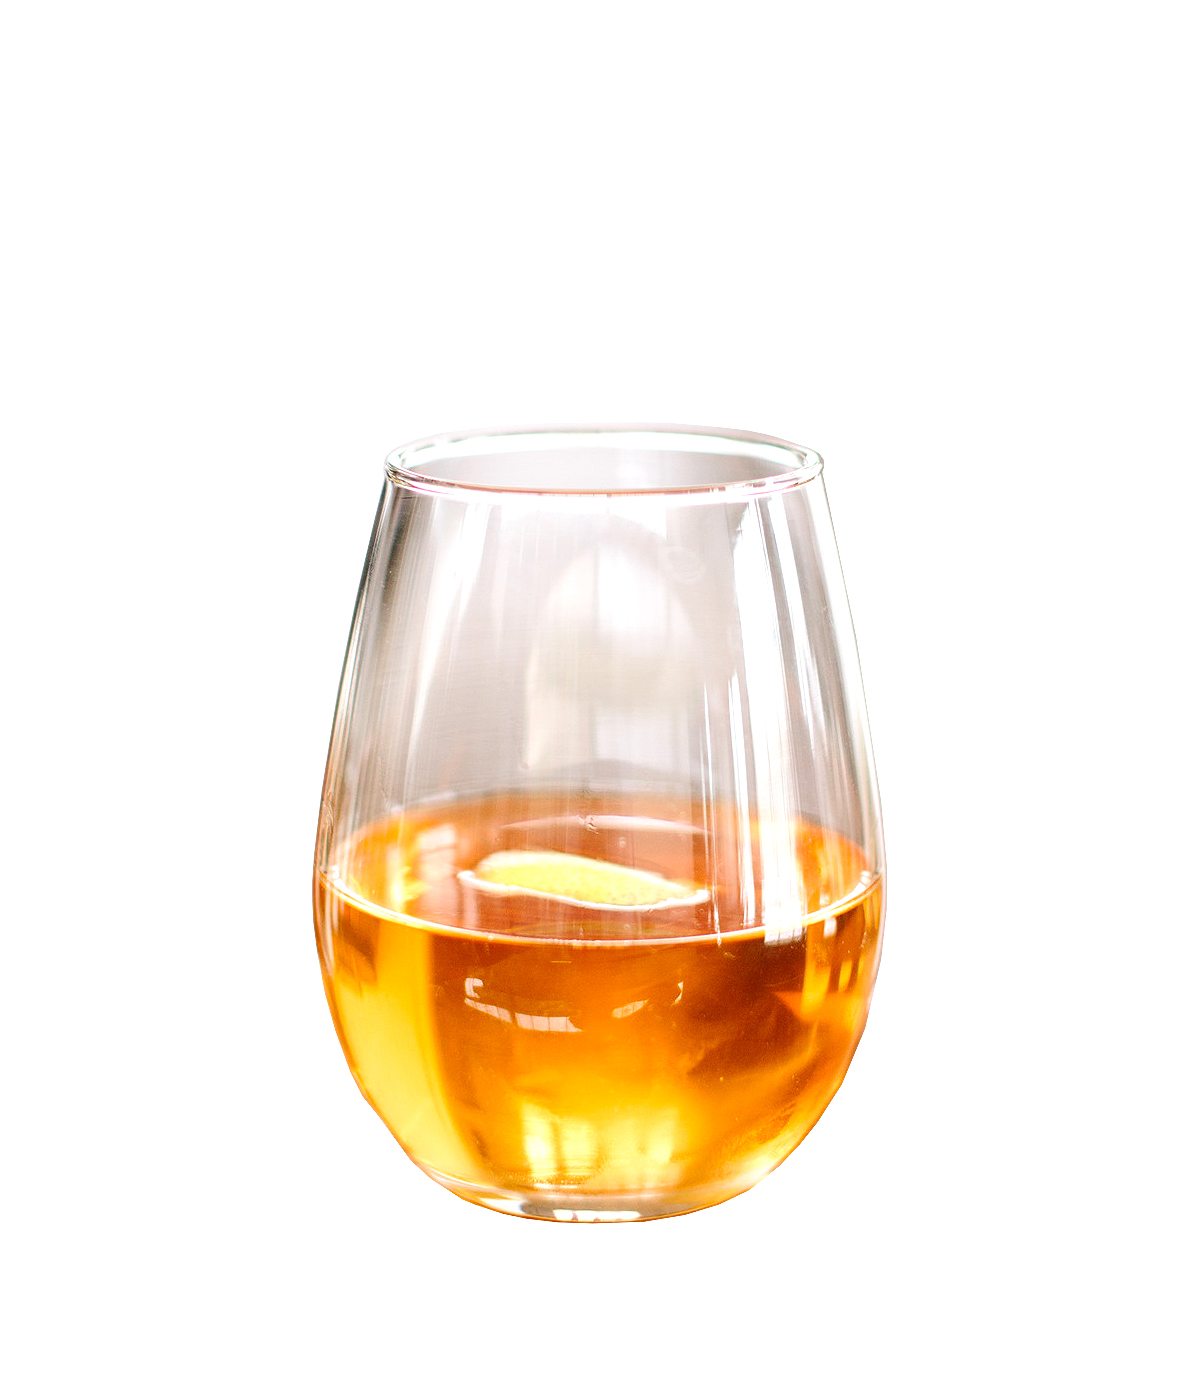 HOOVER  25ml Norseman Orange Liqueur 25ml Sweet Vermouth 50ml Norseman Rum  Stir on ice, decant into a stemless wine glass and garnish with an orange coin